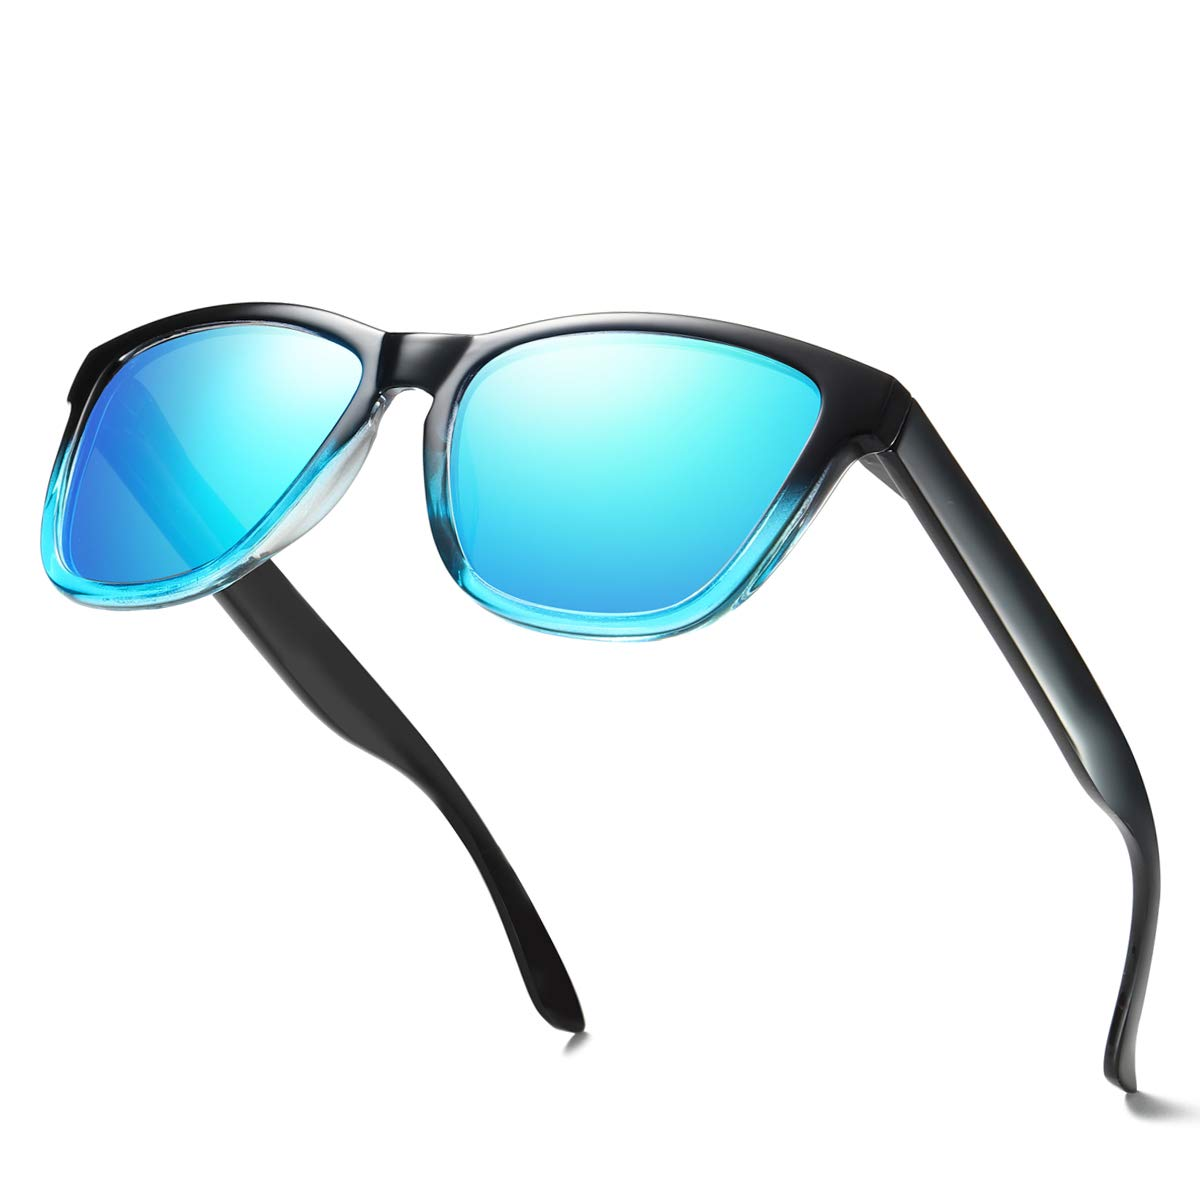 ELITERA Brand Polarized Sunglasses